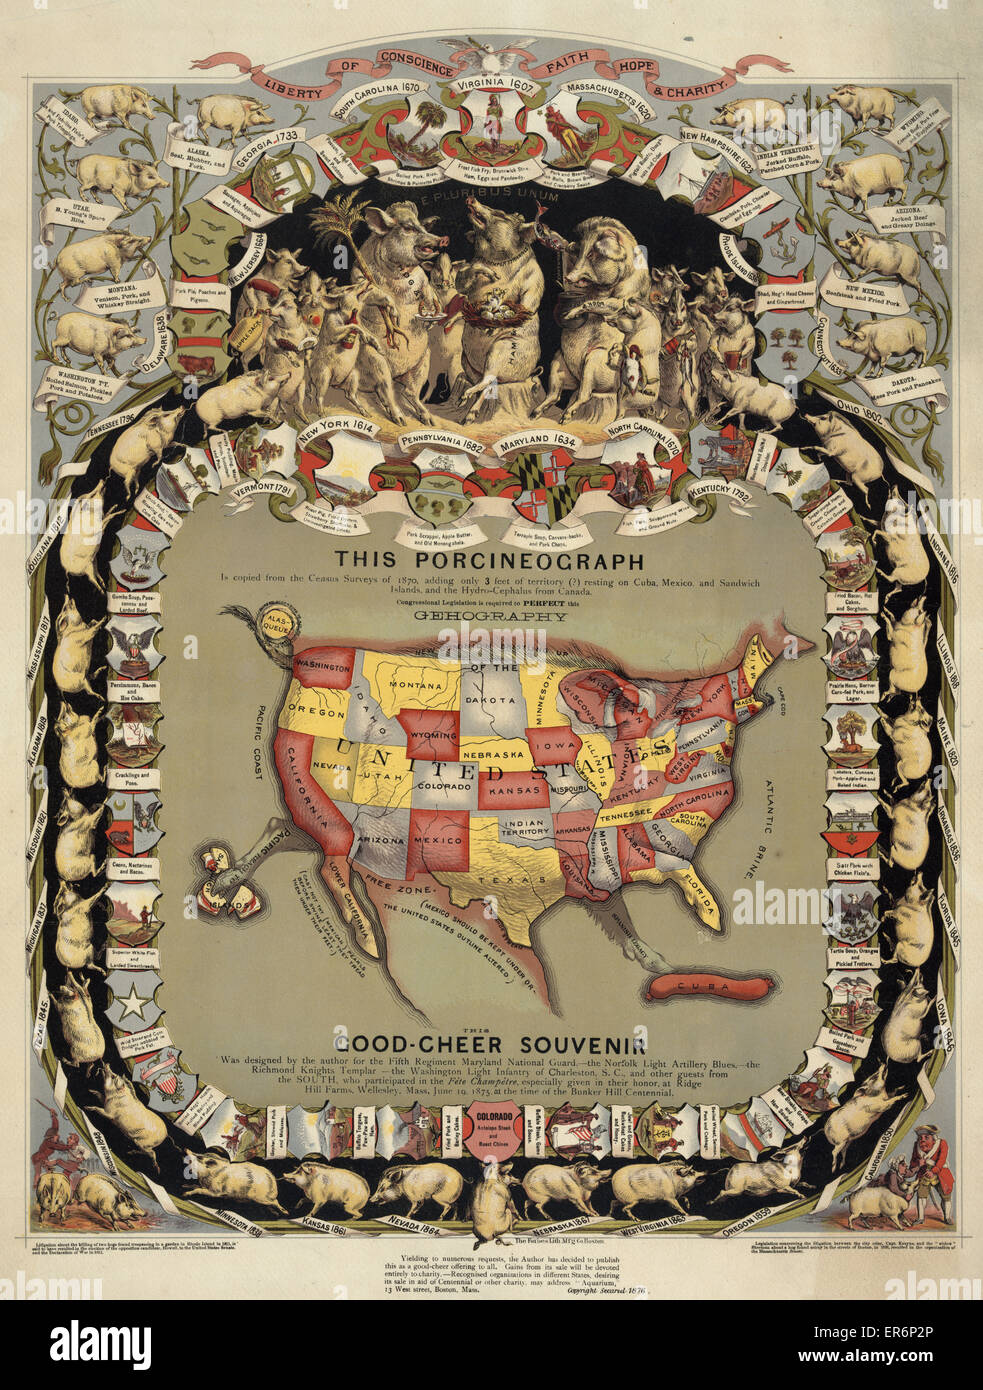 Map Of The United States In Shape Of A Pig Surrounded By Pigs Representing The Different States With Notations Of State Foods C1876